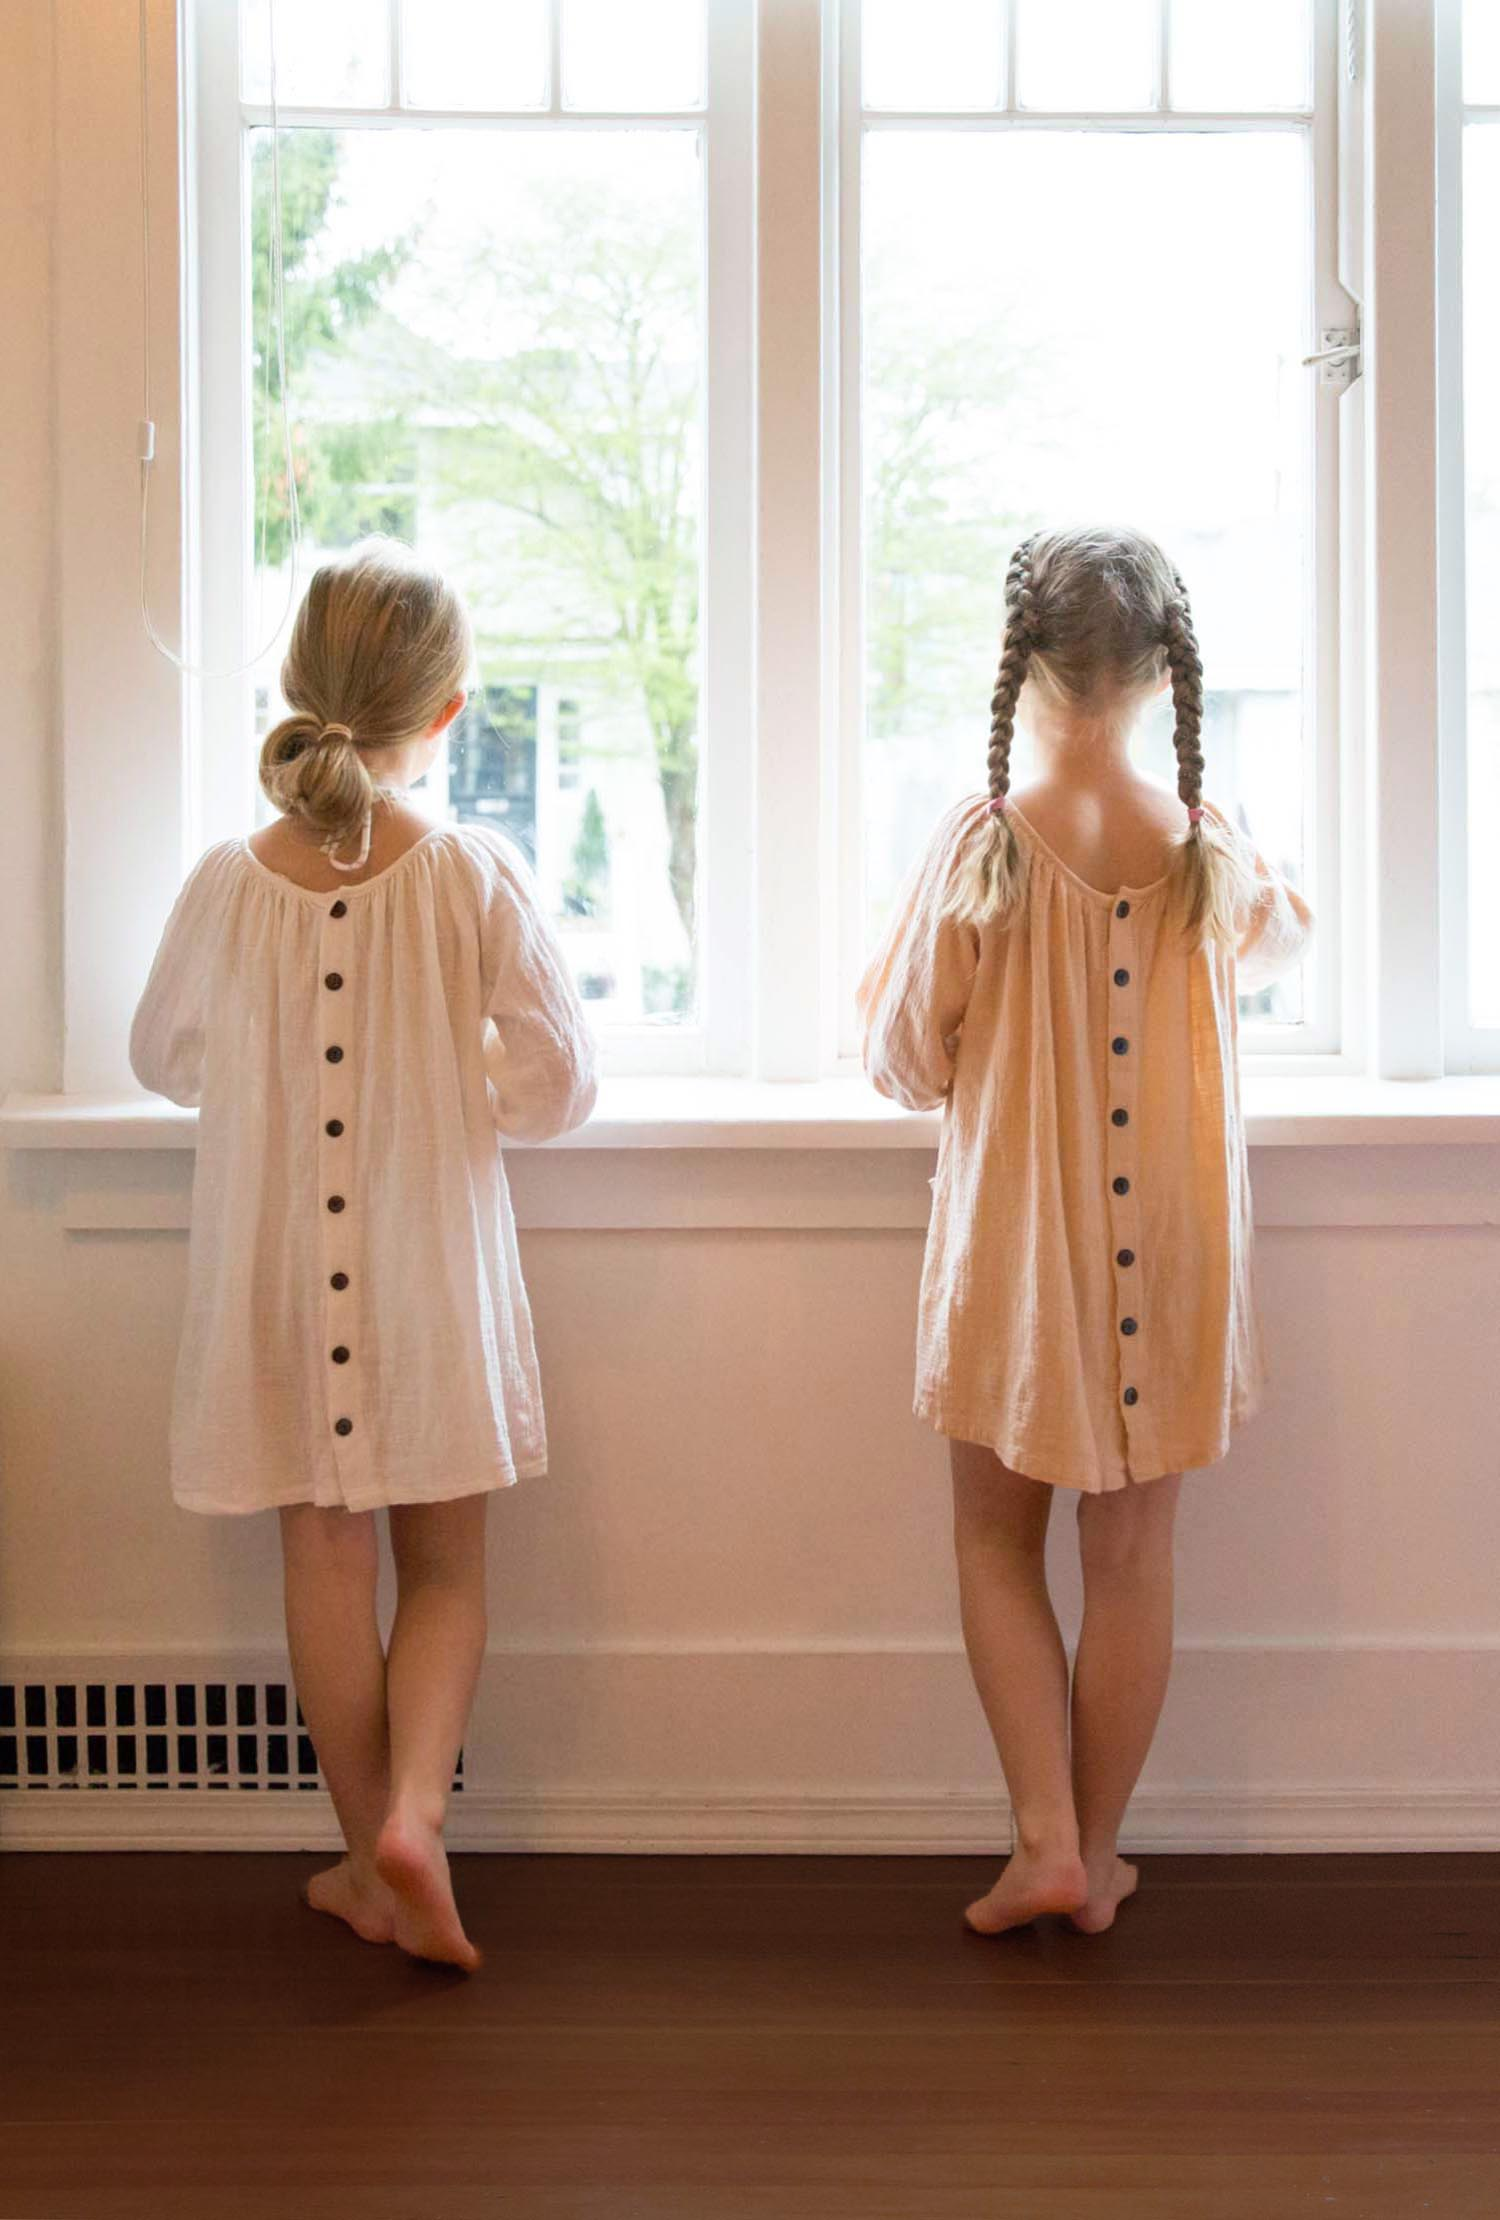 7-year-old birthday girls waiting for friends in 'daughter dresses'